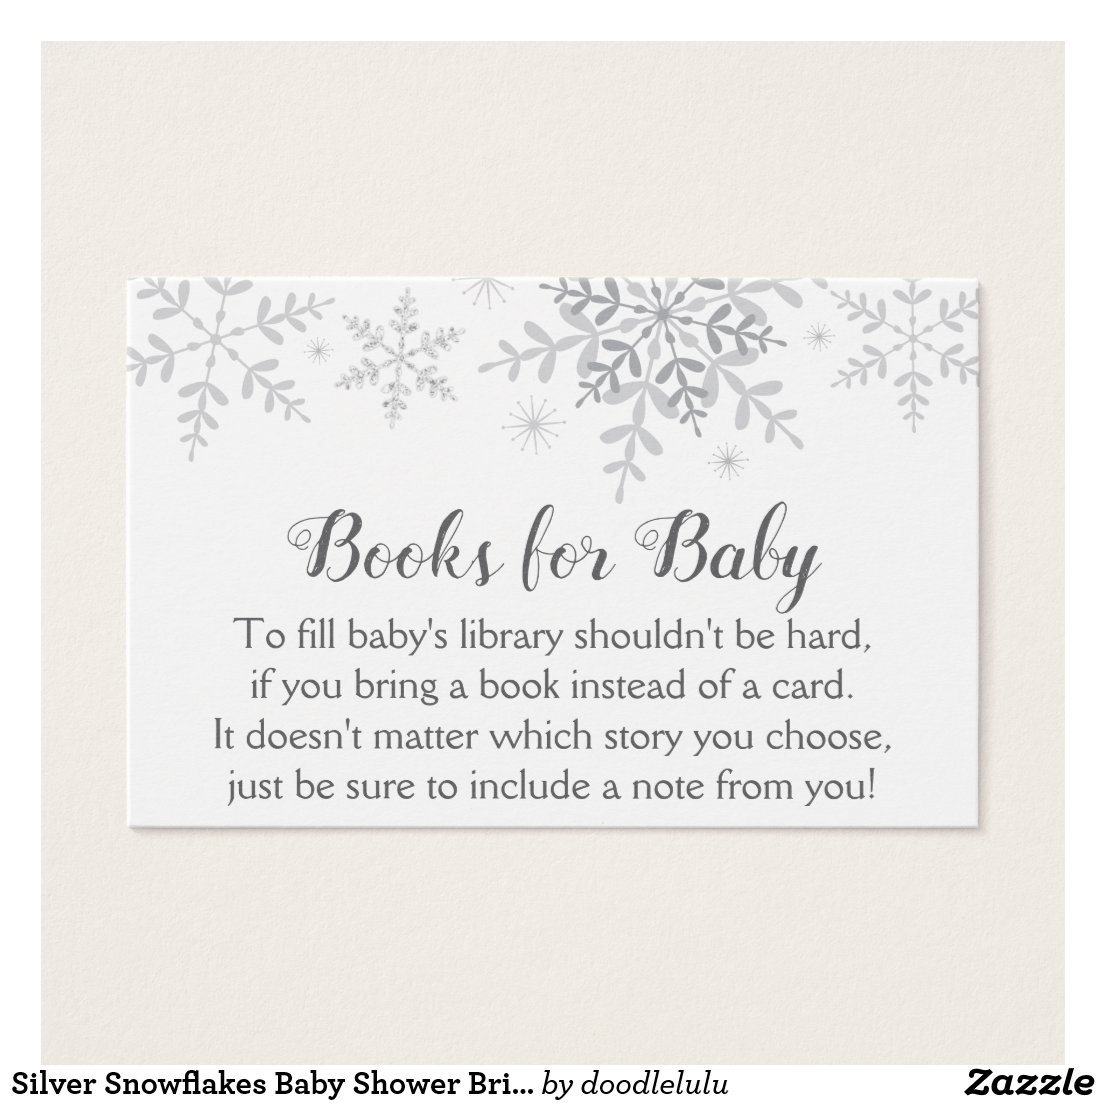 Silver Snowflakes Baby Shower Bring a Book